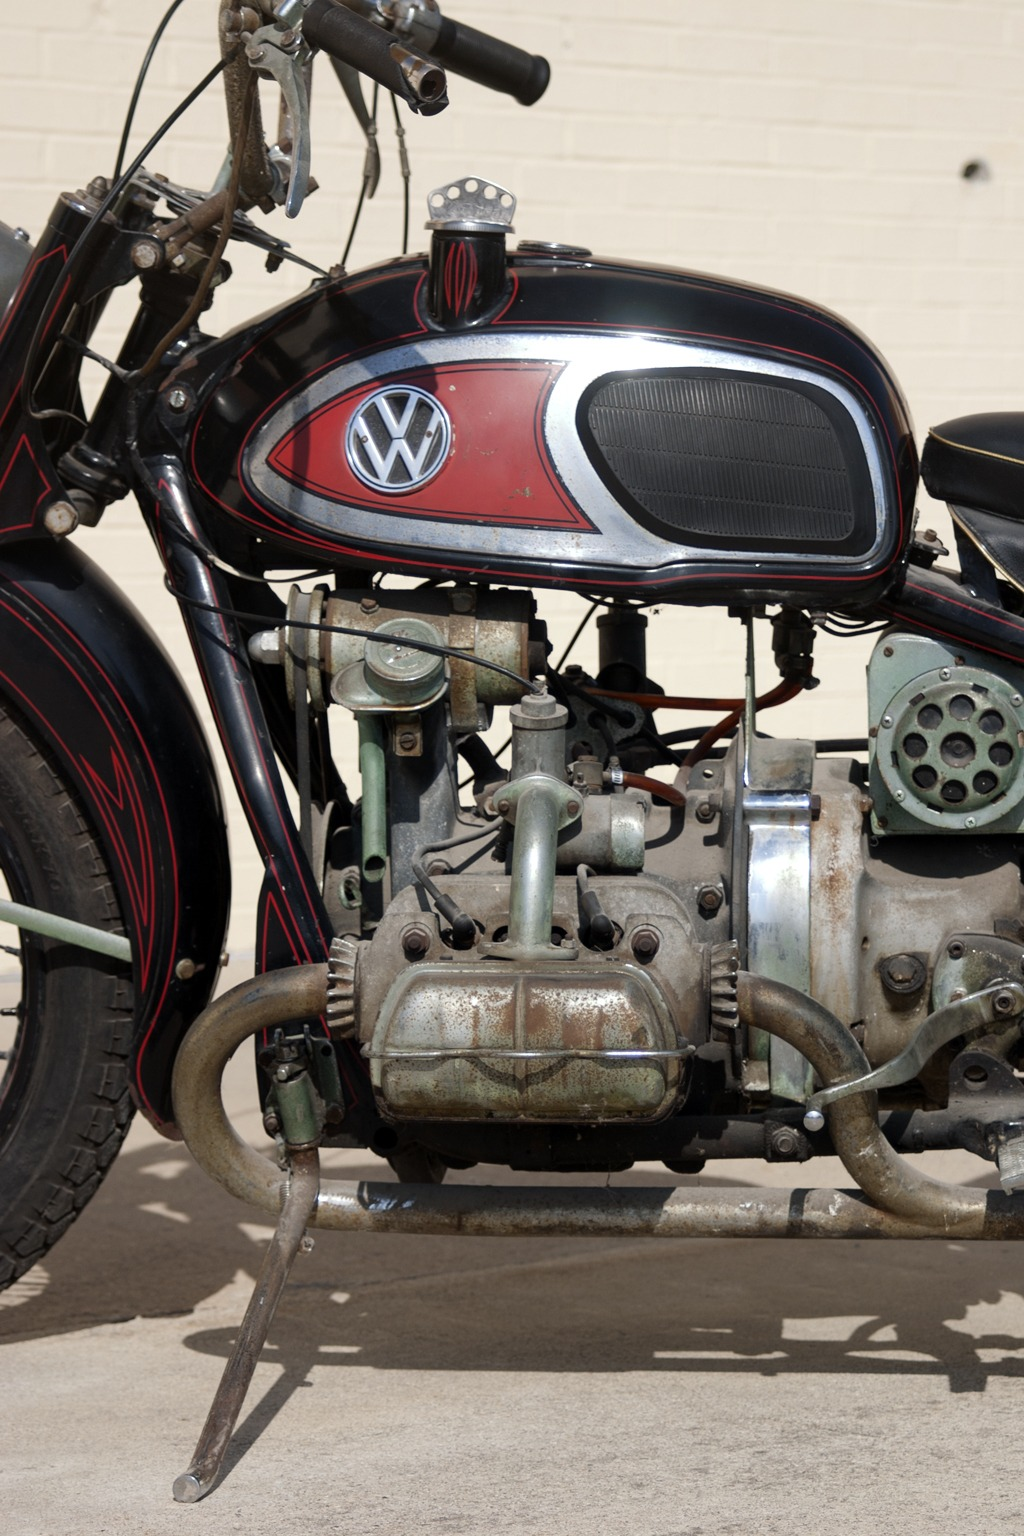 American Pickers Vondutch Xavw Hits Museum National Motorcycle 1960 Vw Beetle Horn Wiring After